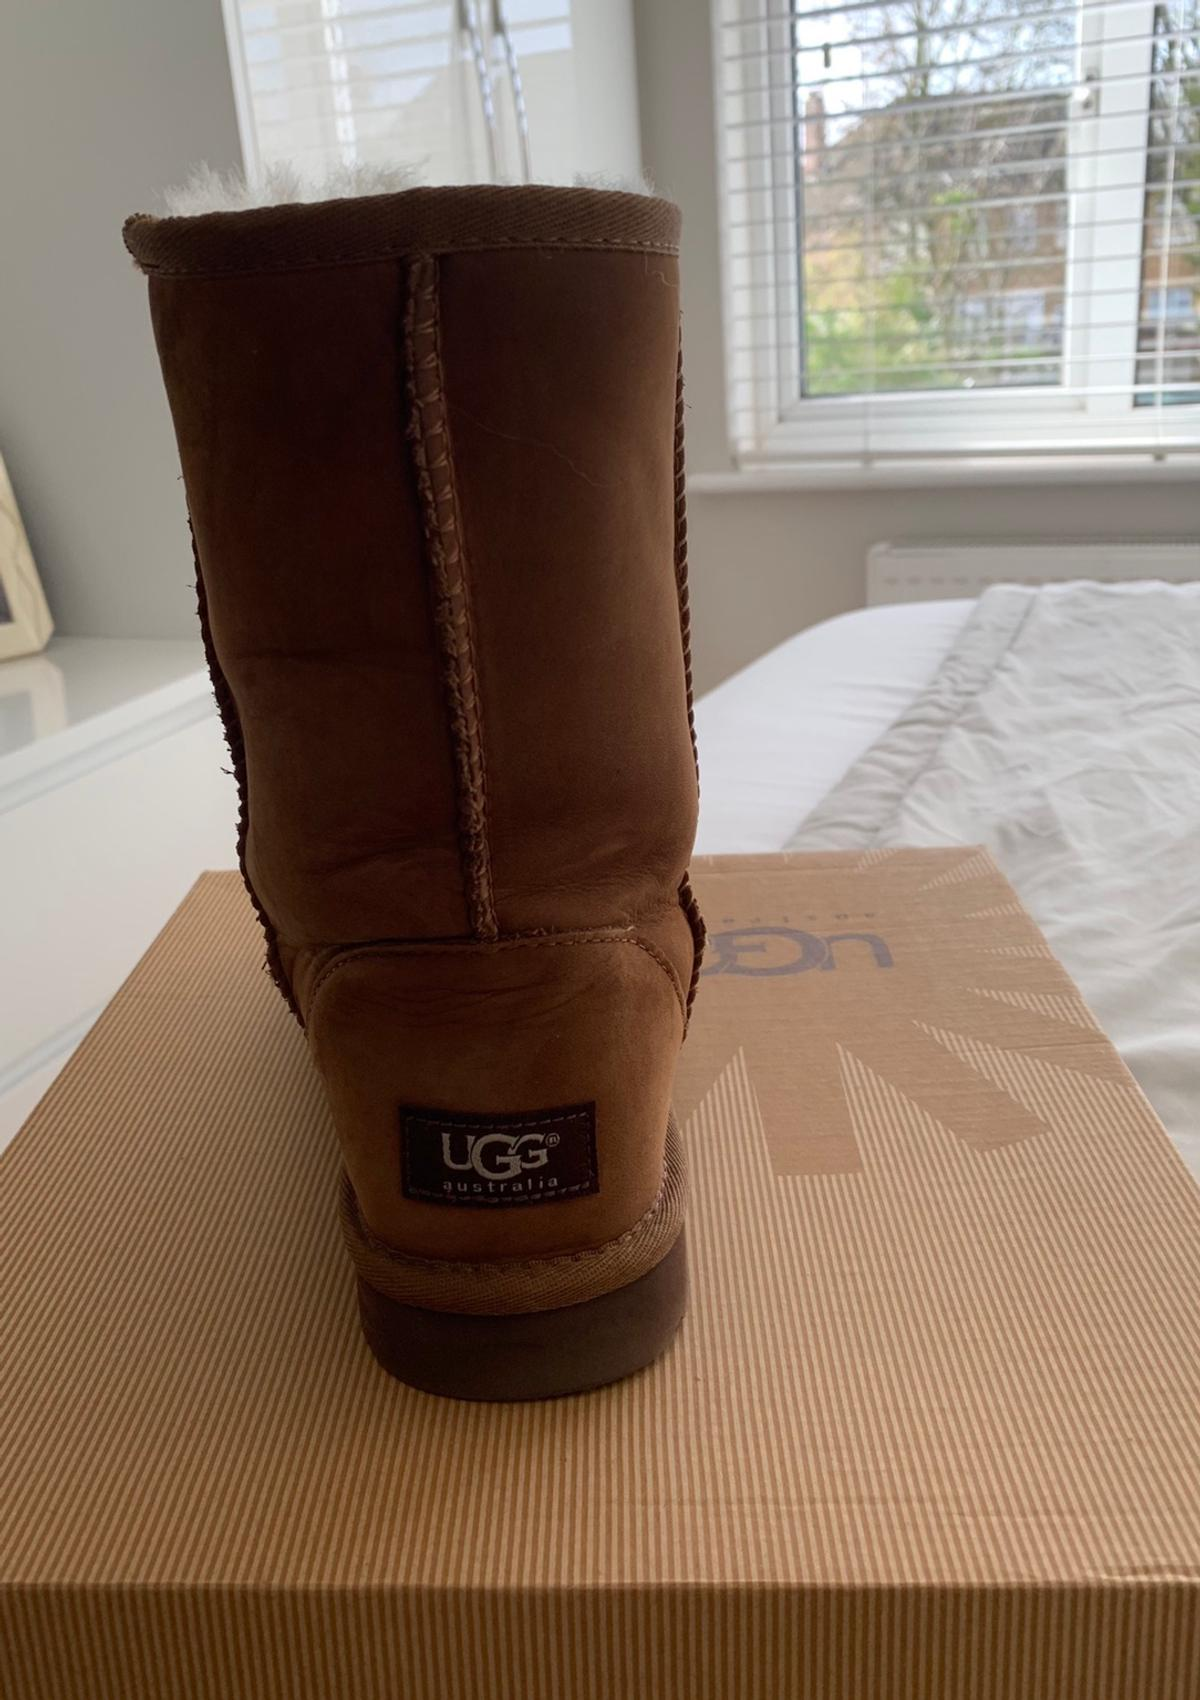 aac423006ae Ugg boots (size 5.5)